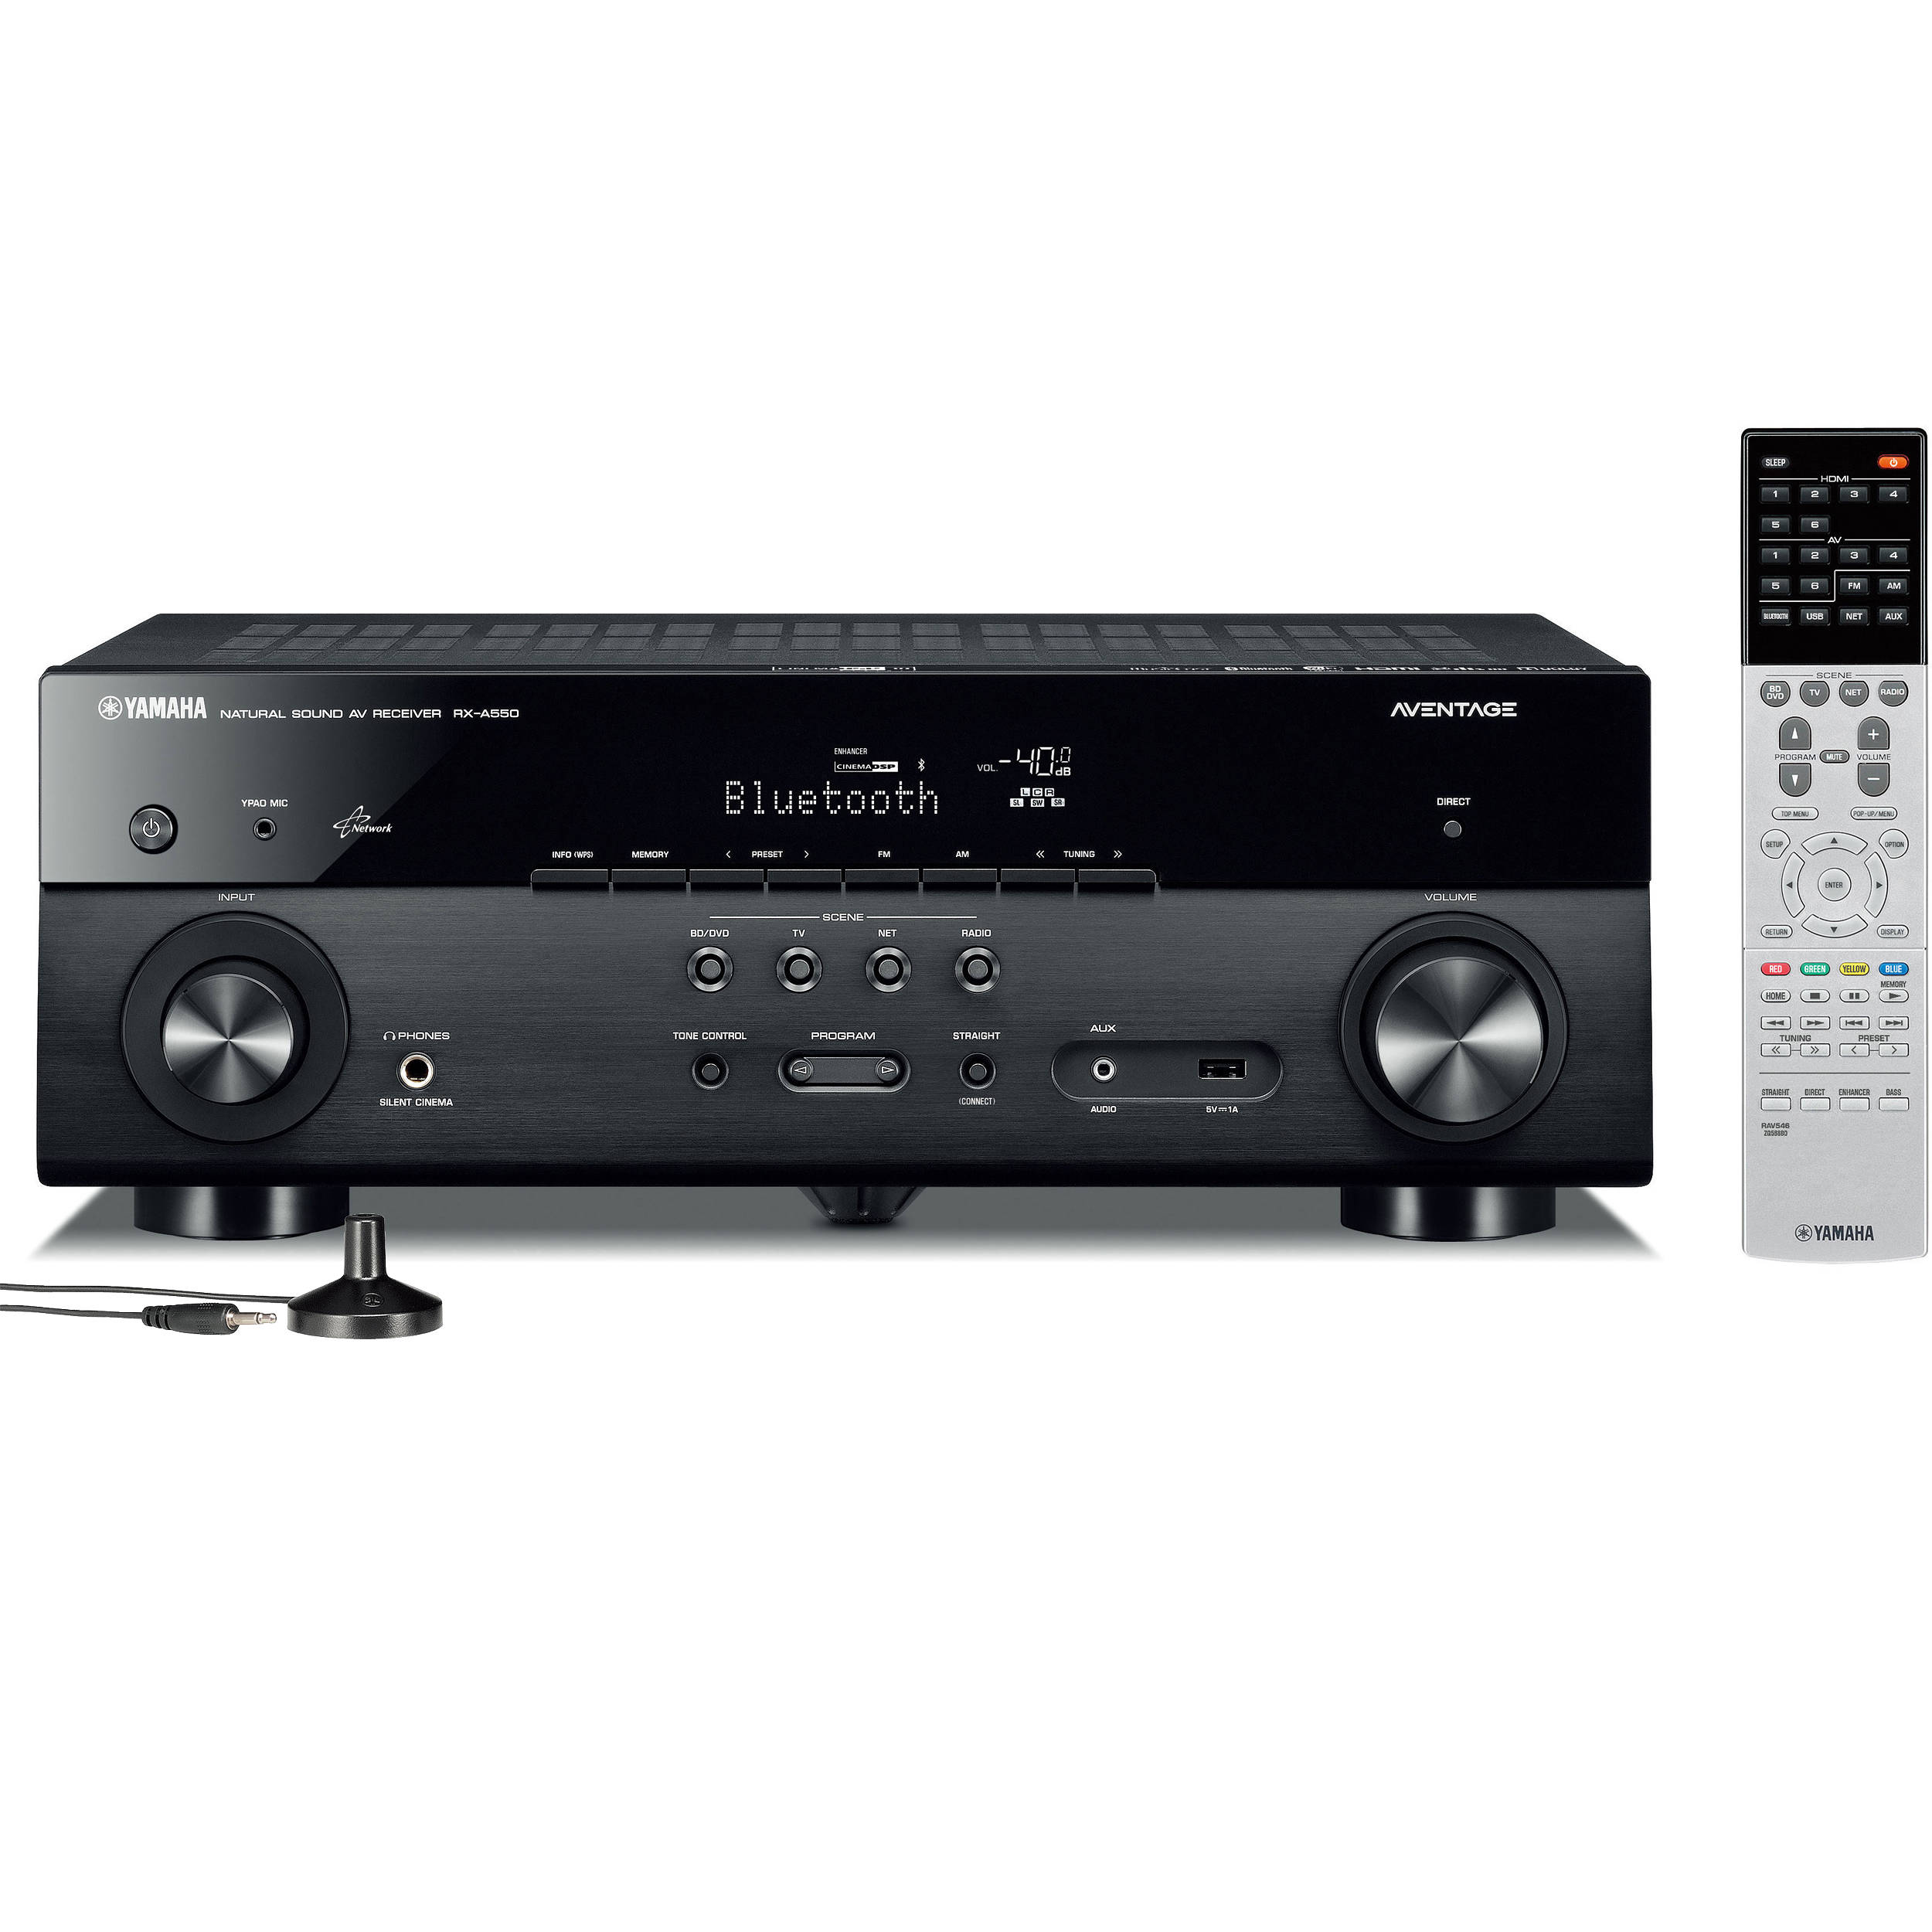 Yamaha AVENTAGE RX-A550BL 5 1-Channel Network AV Receiver (Black)